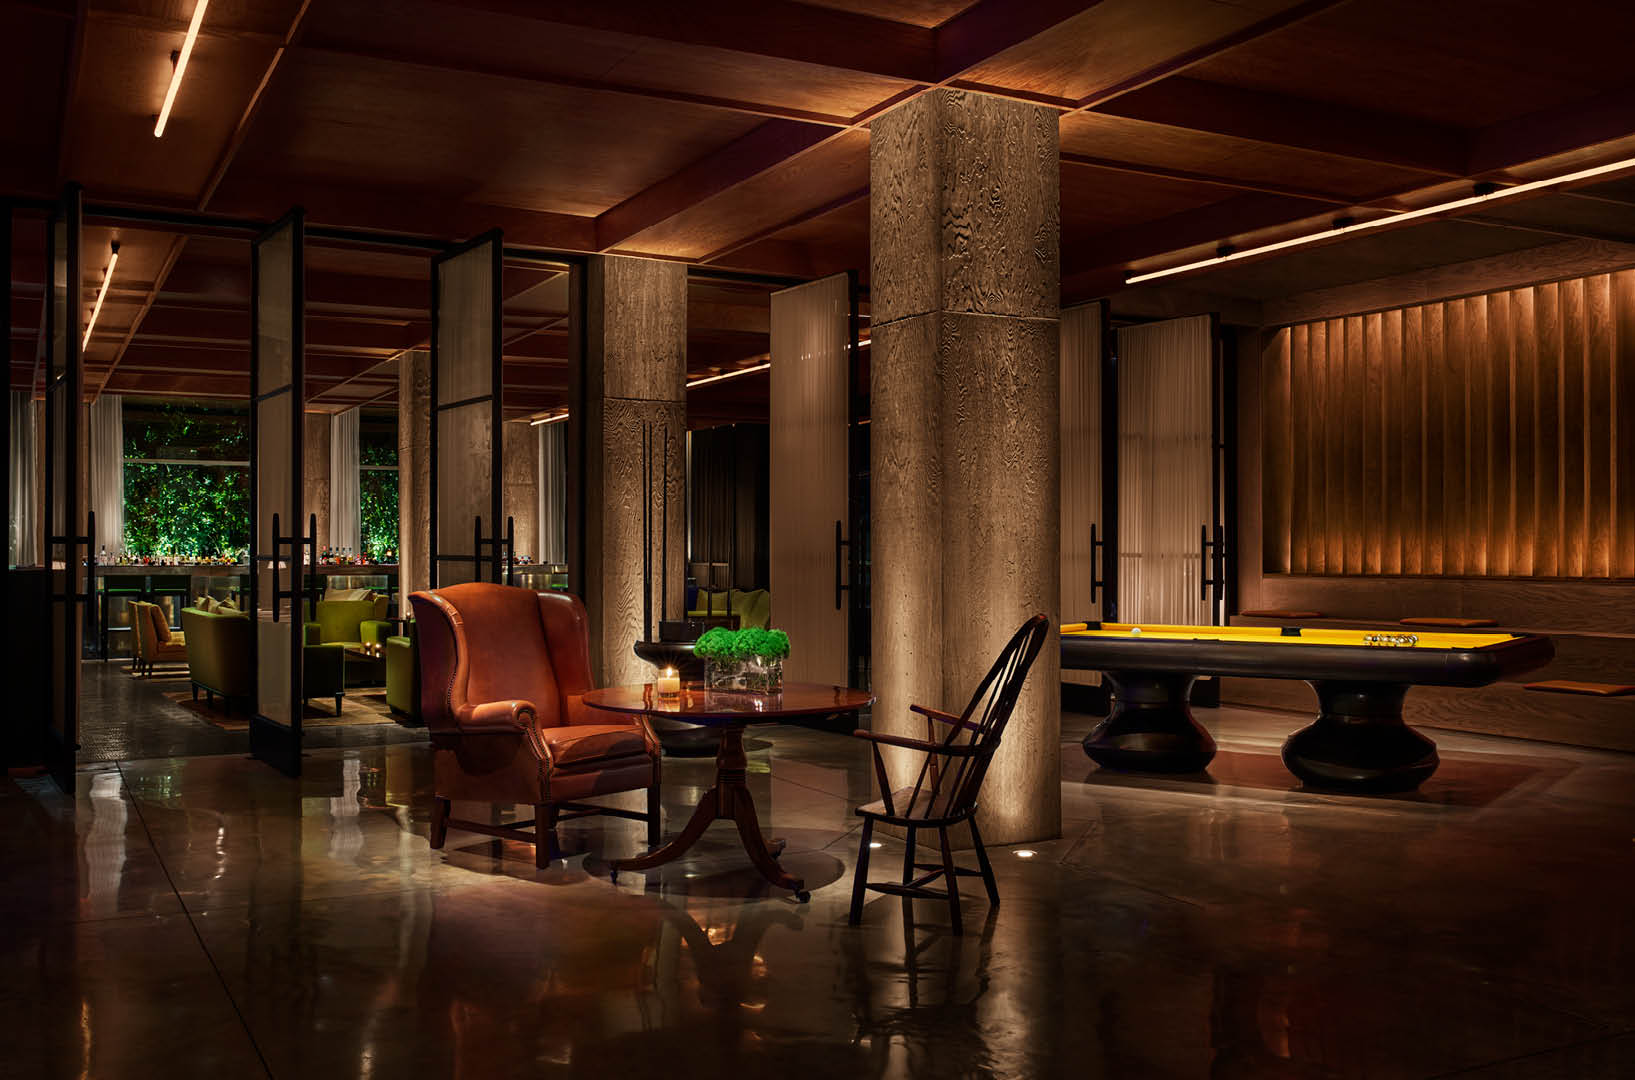 Public Hotel New York City An Ian Schrager Hotel Restaurants And